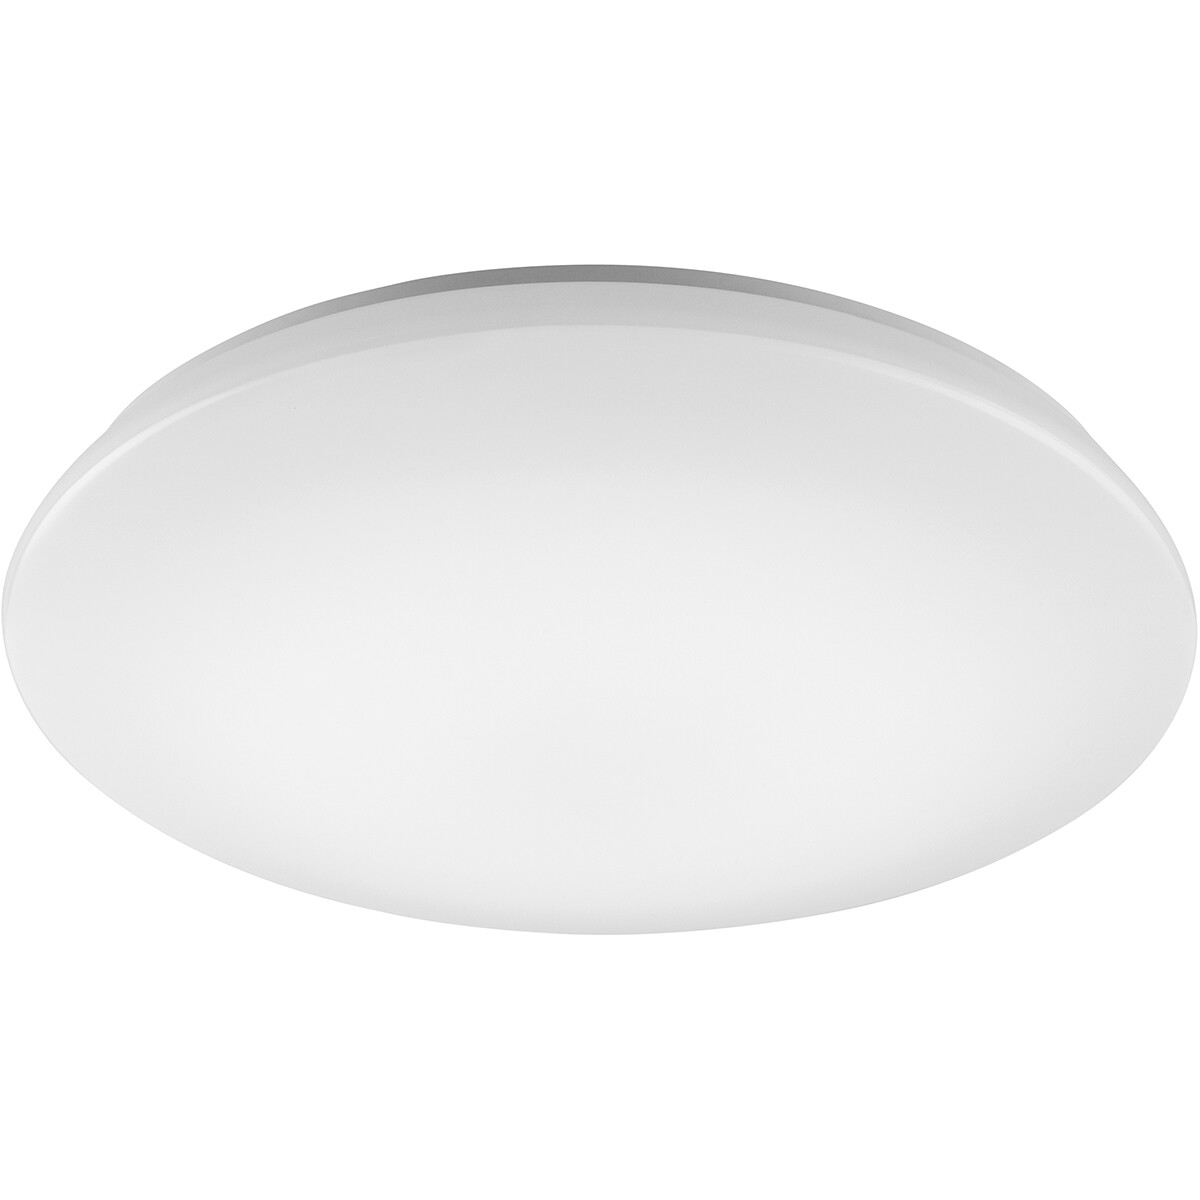 LED Plafondlamp WiZ - Smart LED - Trion Nilon - 40W - Aanpasbare Kleur - Dimbaar - Afstandsbediening